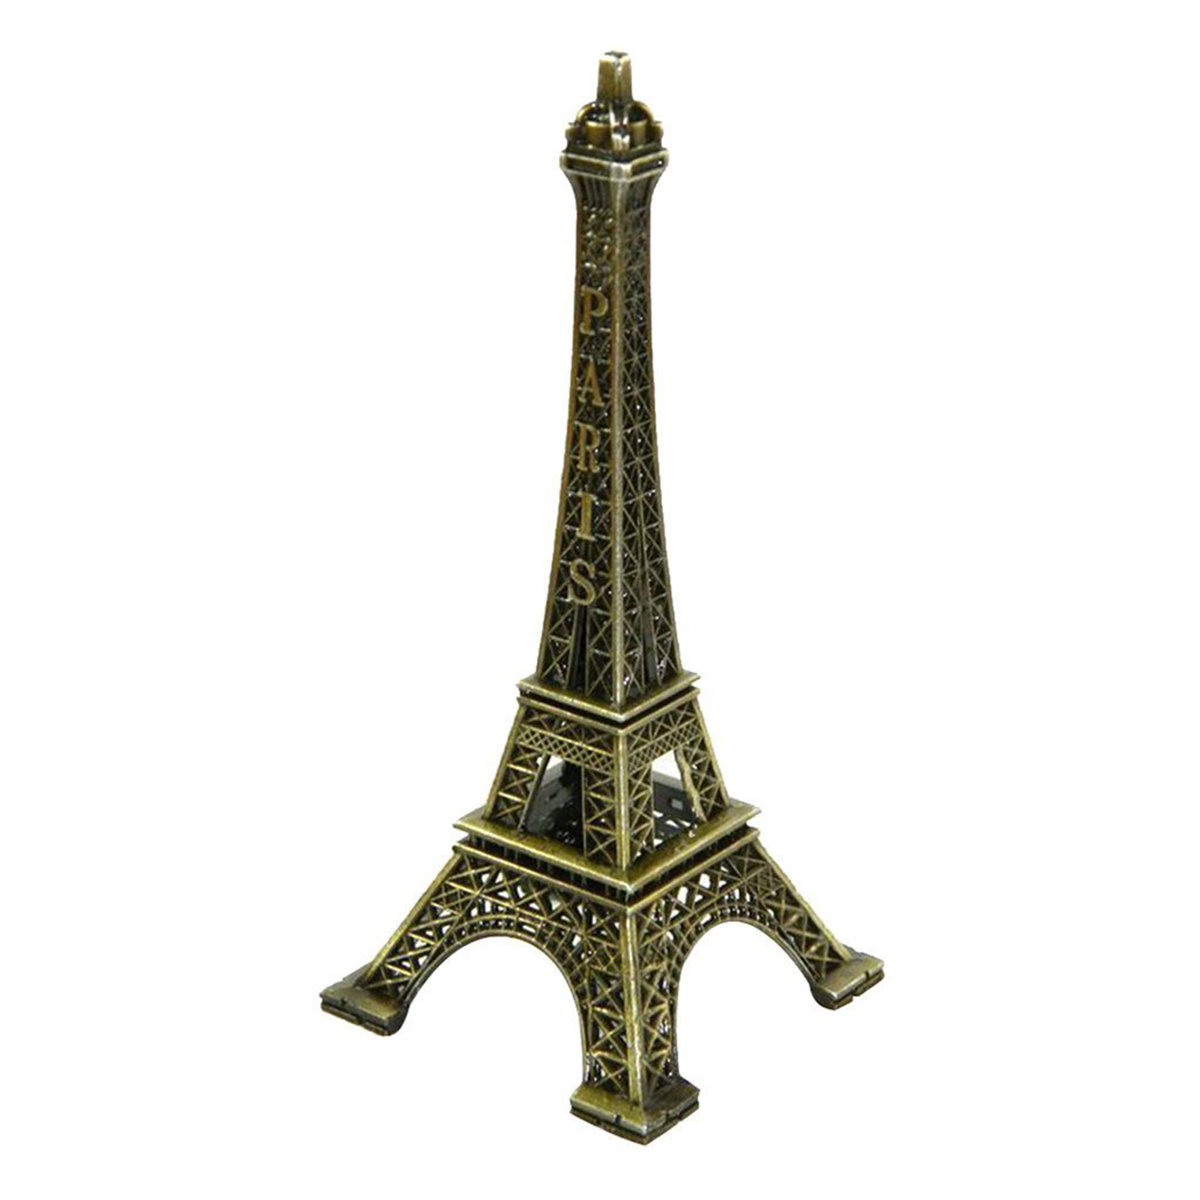 Metal Eiffel Tower Statue 12 Inches Eiffel Tower Model Souvenir Paris Replica from France